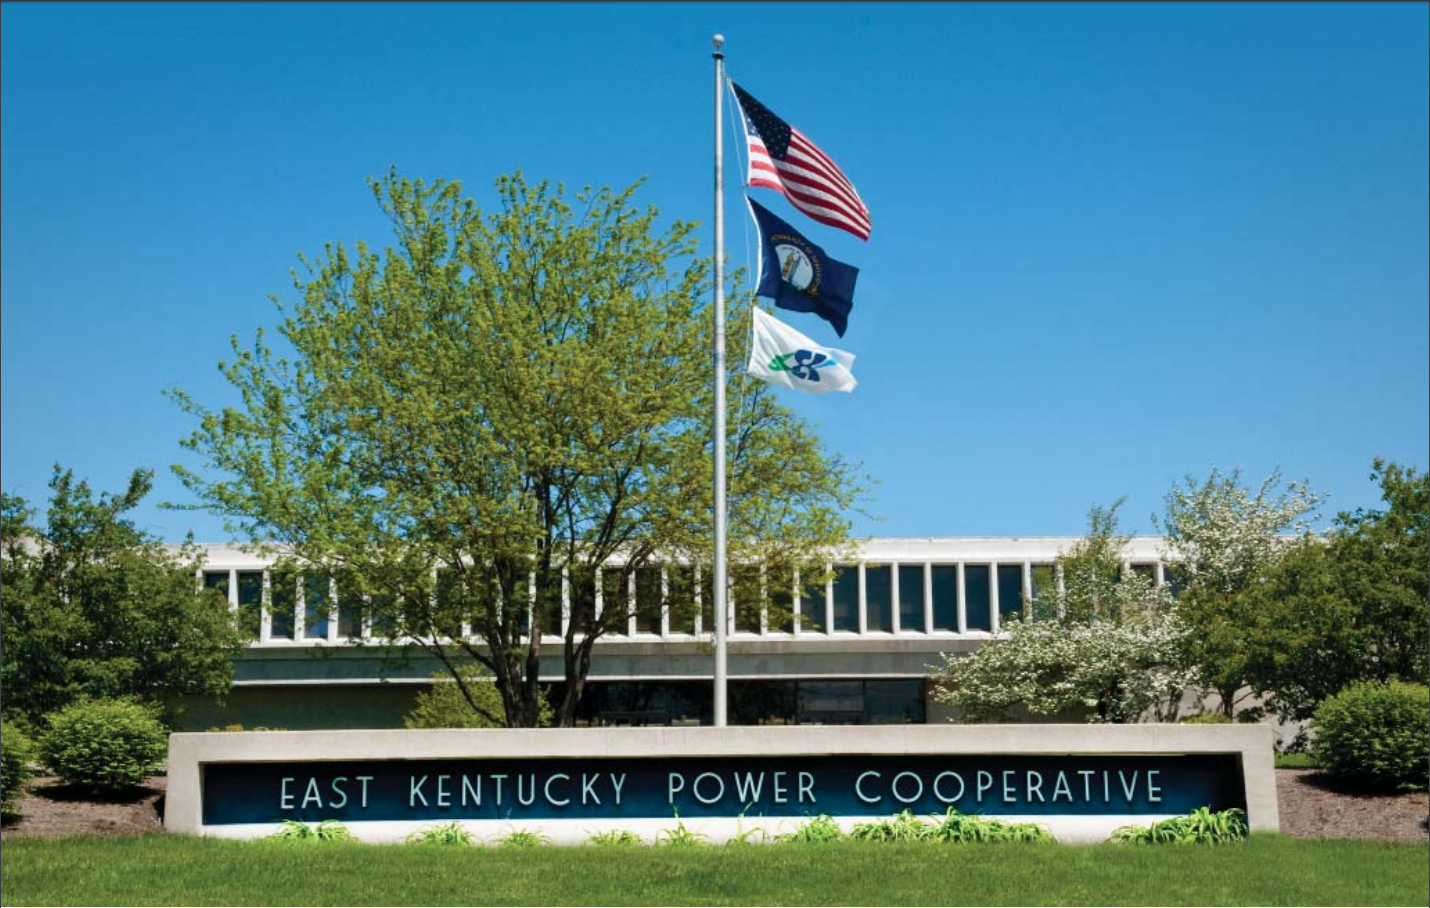 East Kentucky Power Cooperative (EKPC) delivers power to more than 520,000 homes and businesses.